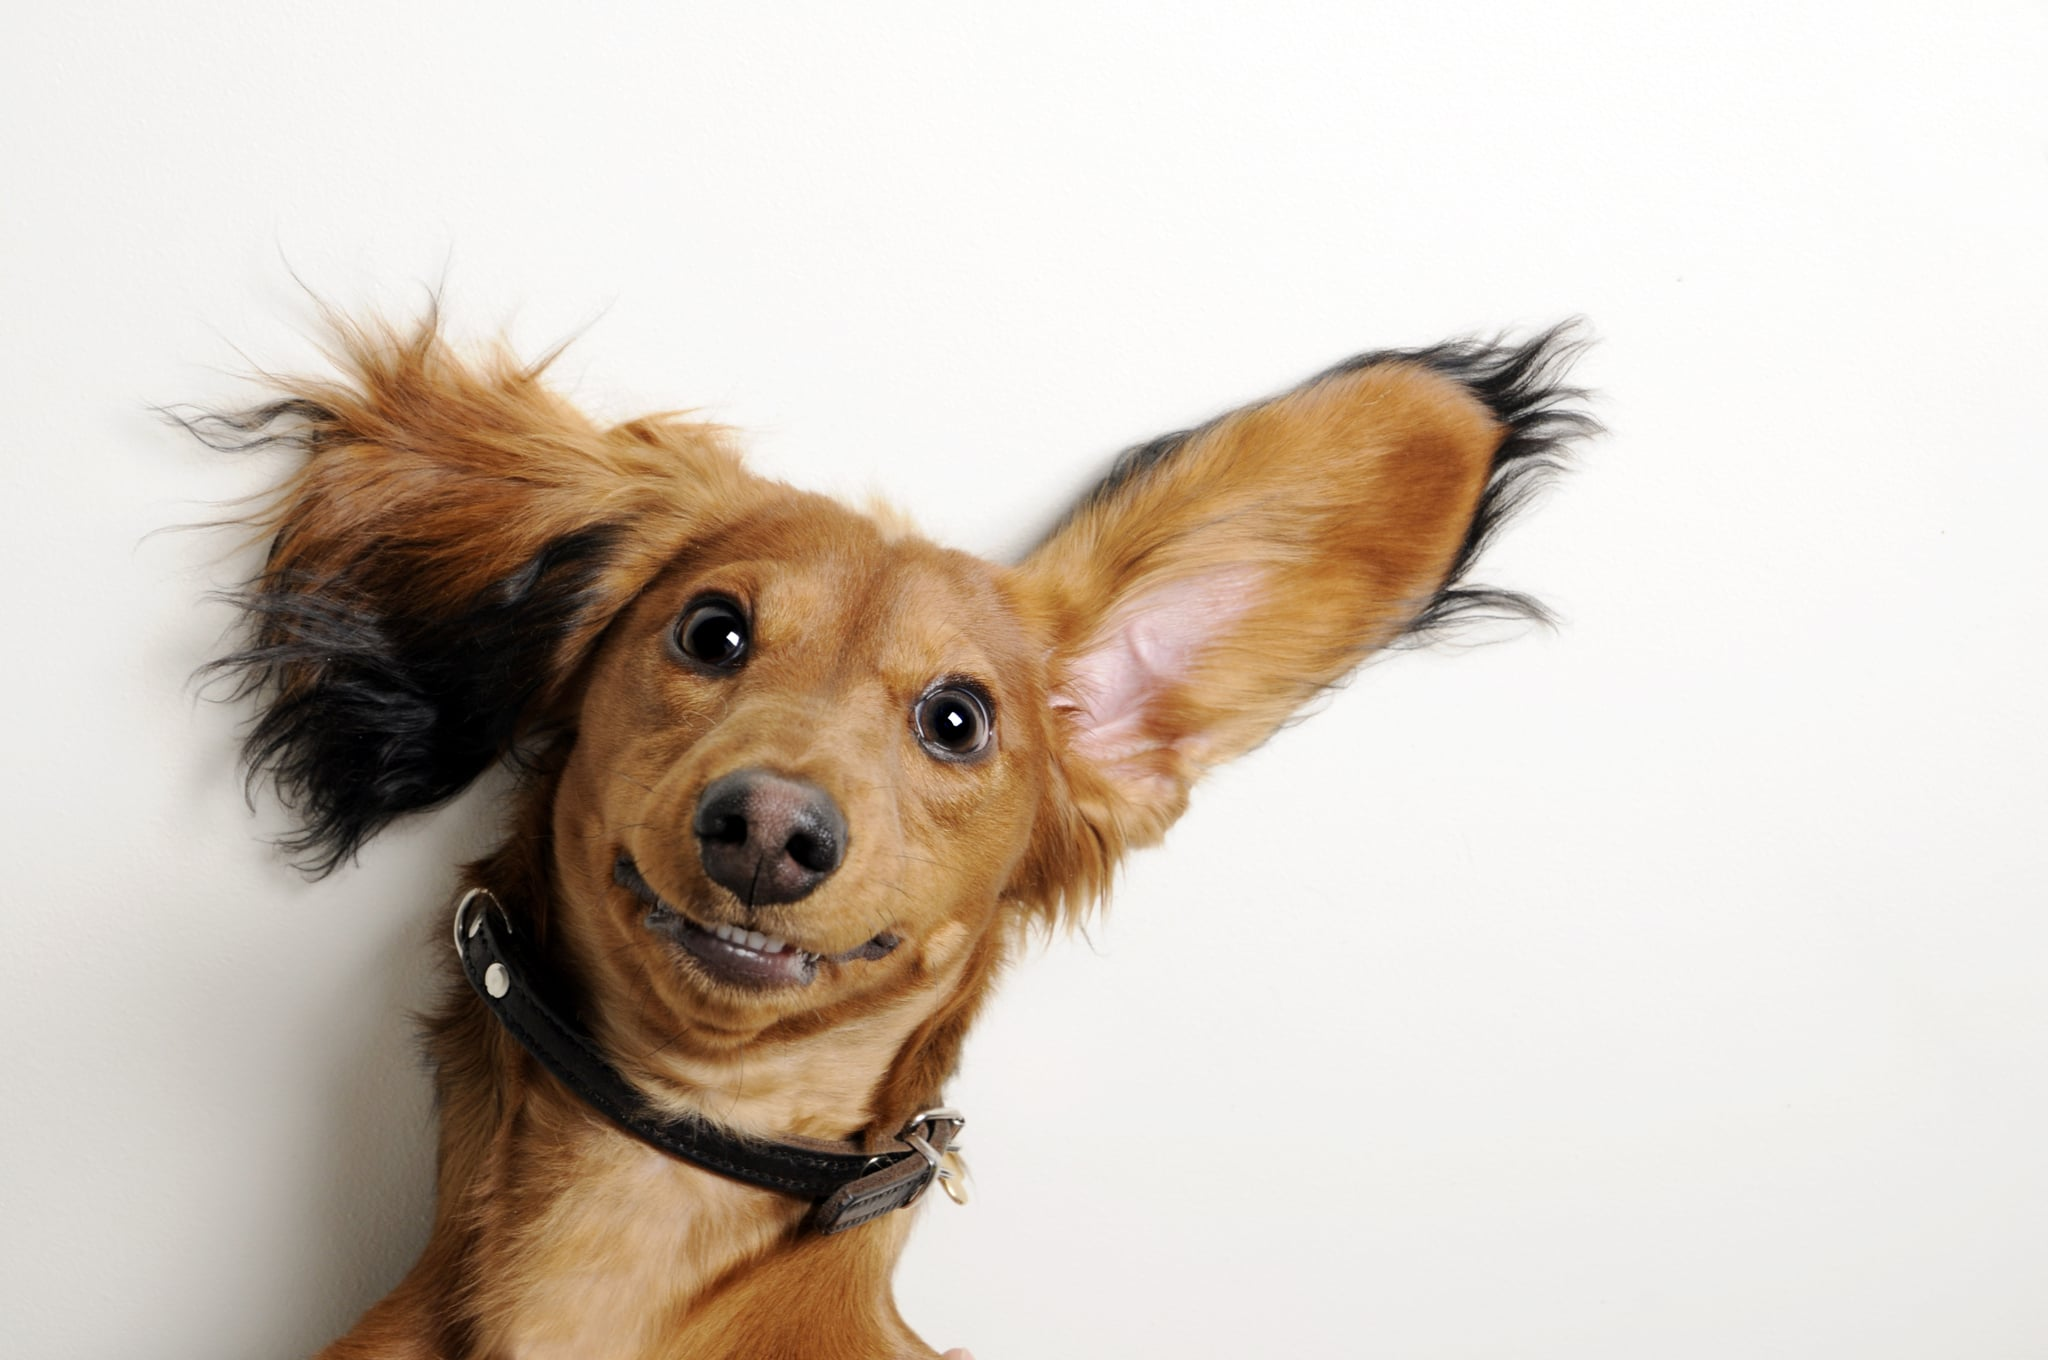 Pictures Of Dogs Making Funny Faces Popsugar Pets